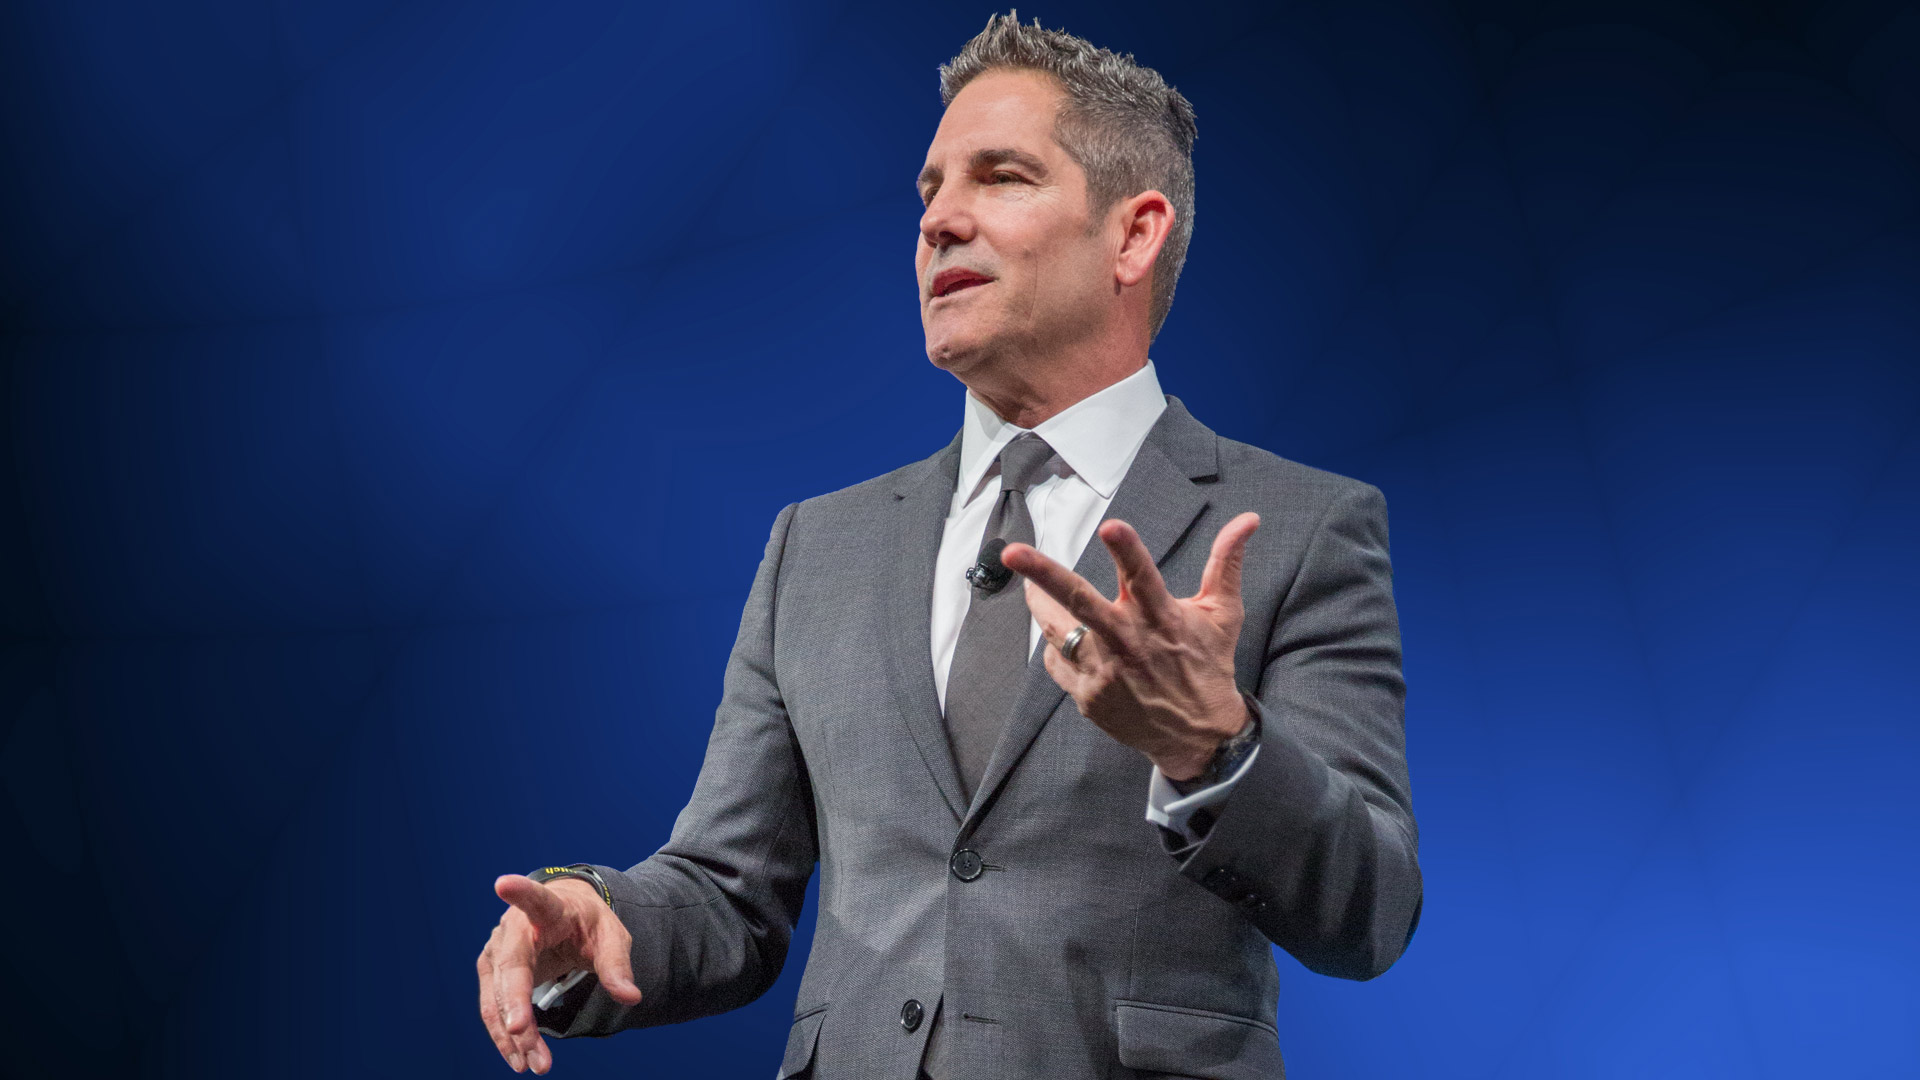 Grant Cardone 3 Easy Questions That Determine Your LifeYour Life